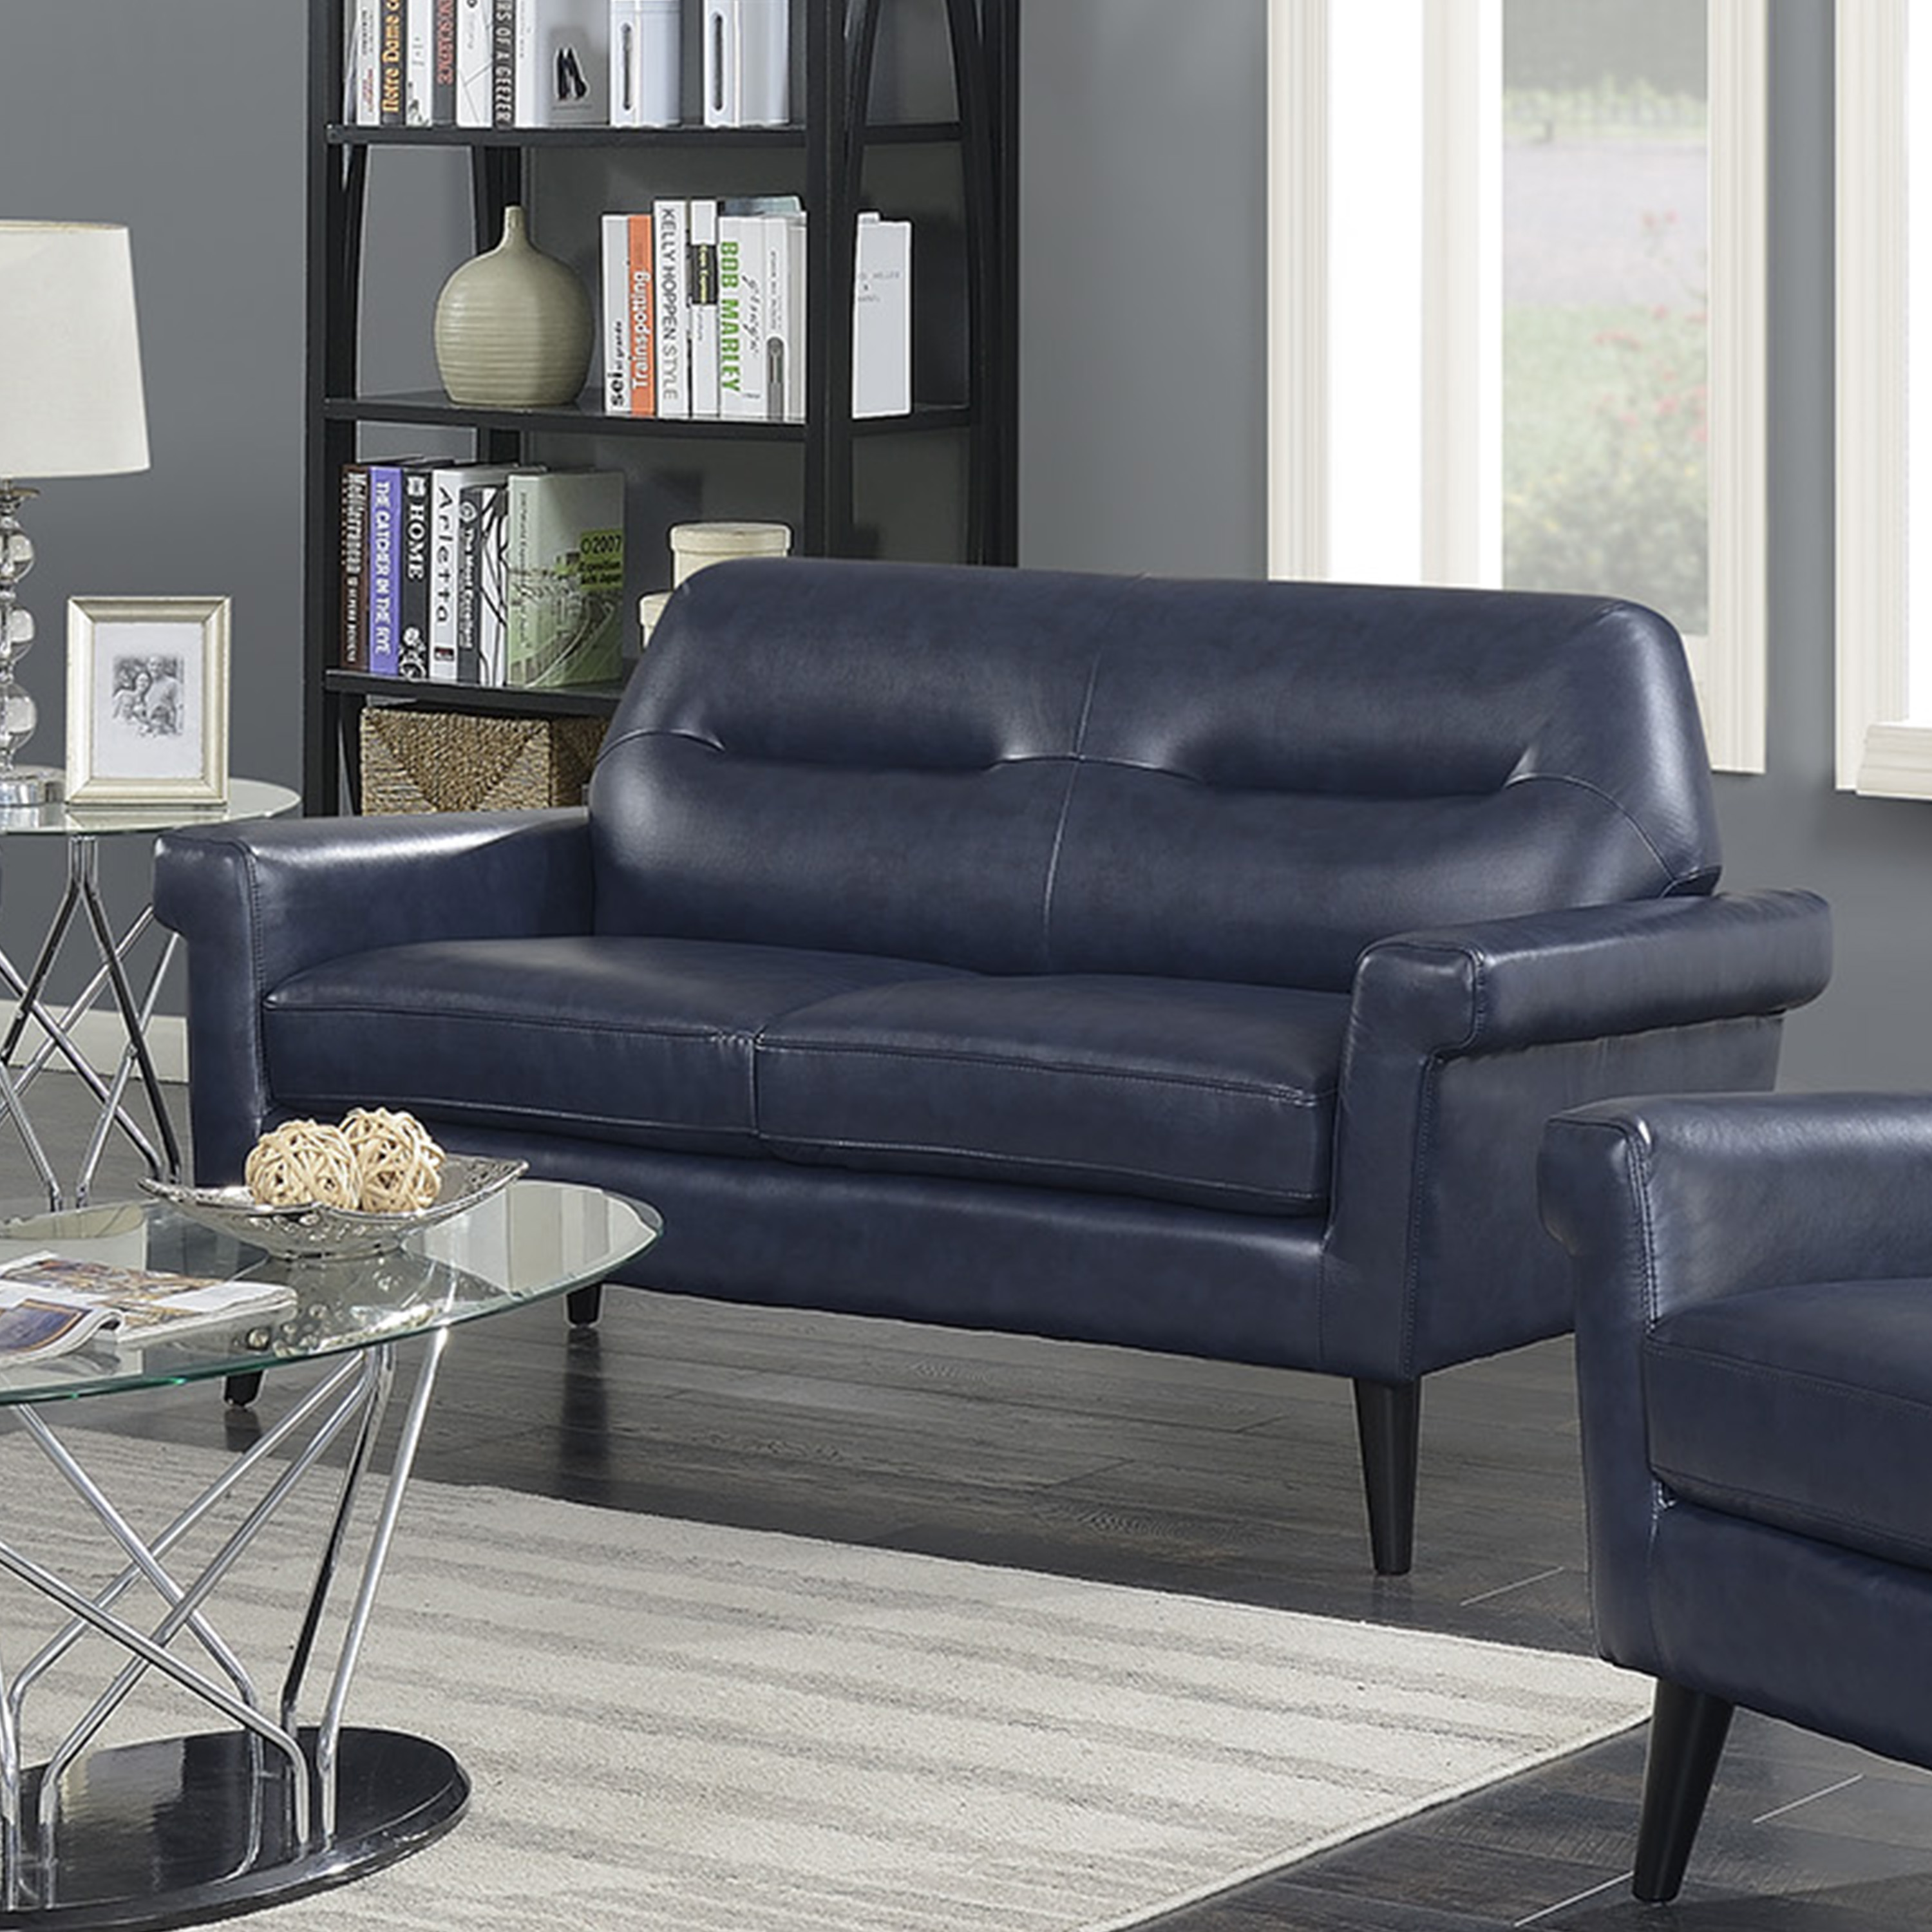 Enjoyable Camden Collection Modern Mid Century Faux Leather Upholstered Stationary Living Room Love Seat Dark Blue Walmart Com Squirreltailoven Fun Painted Chair Ideas Images Squirreltailovenorg